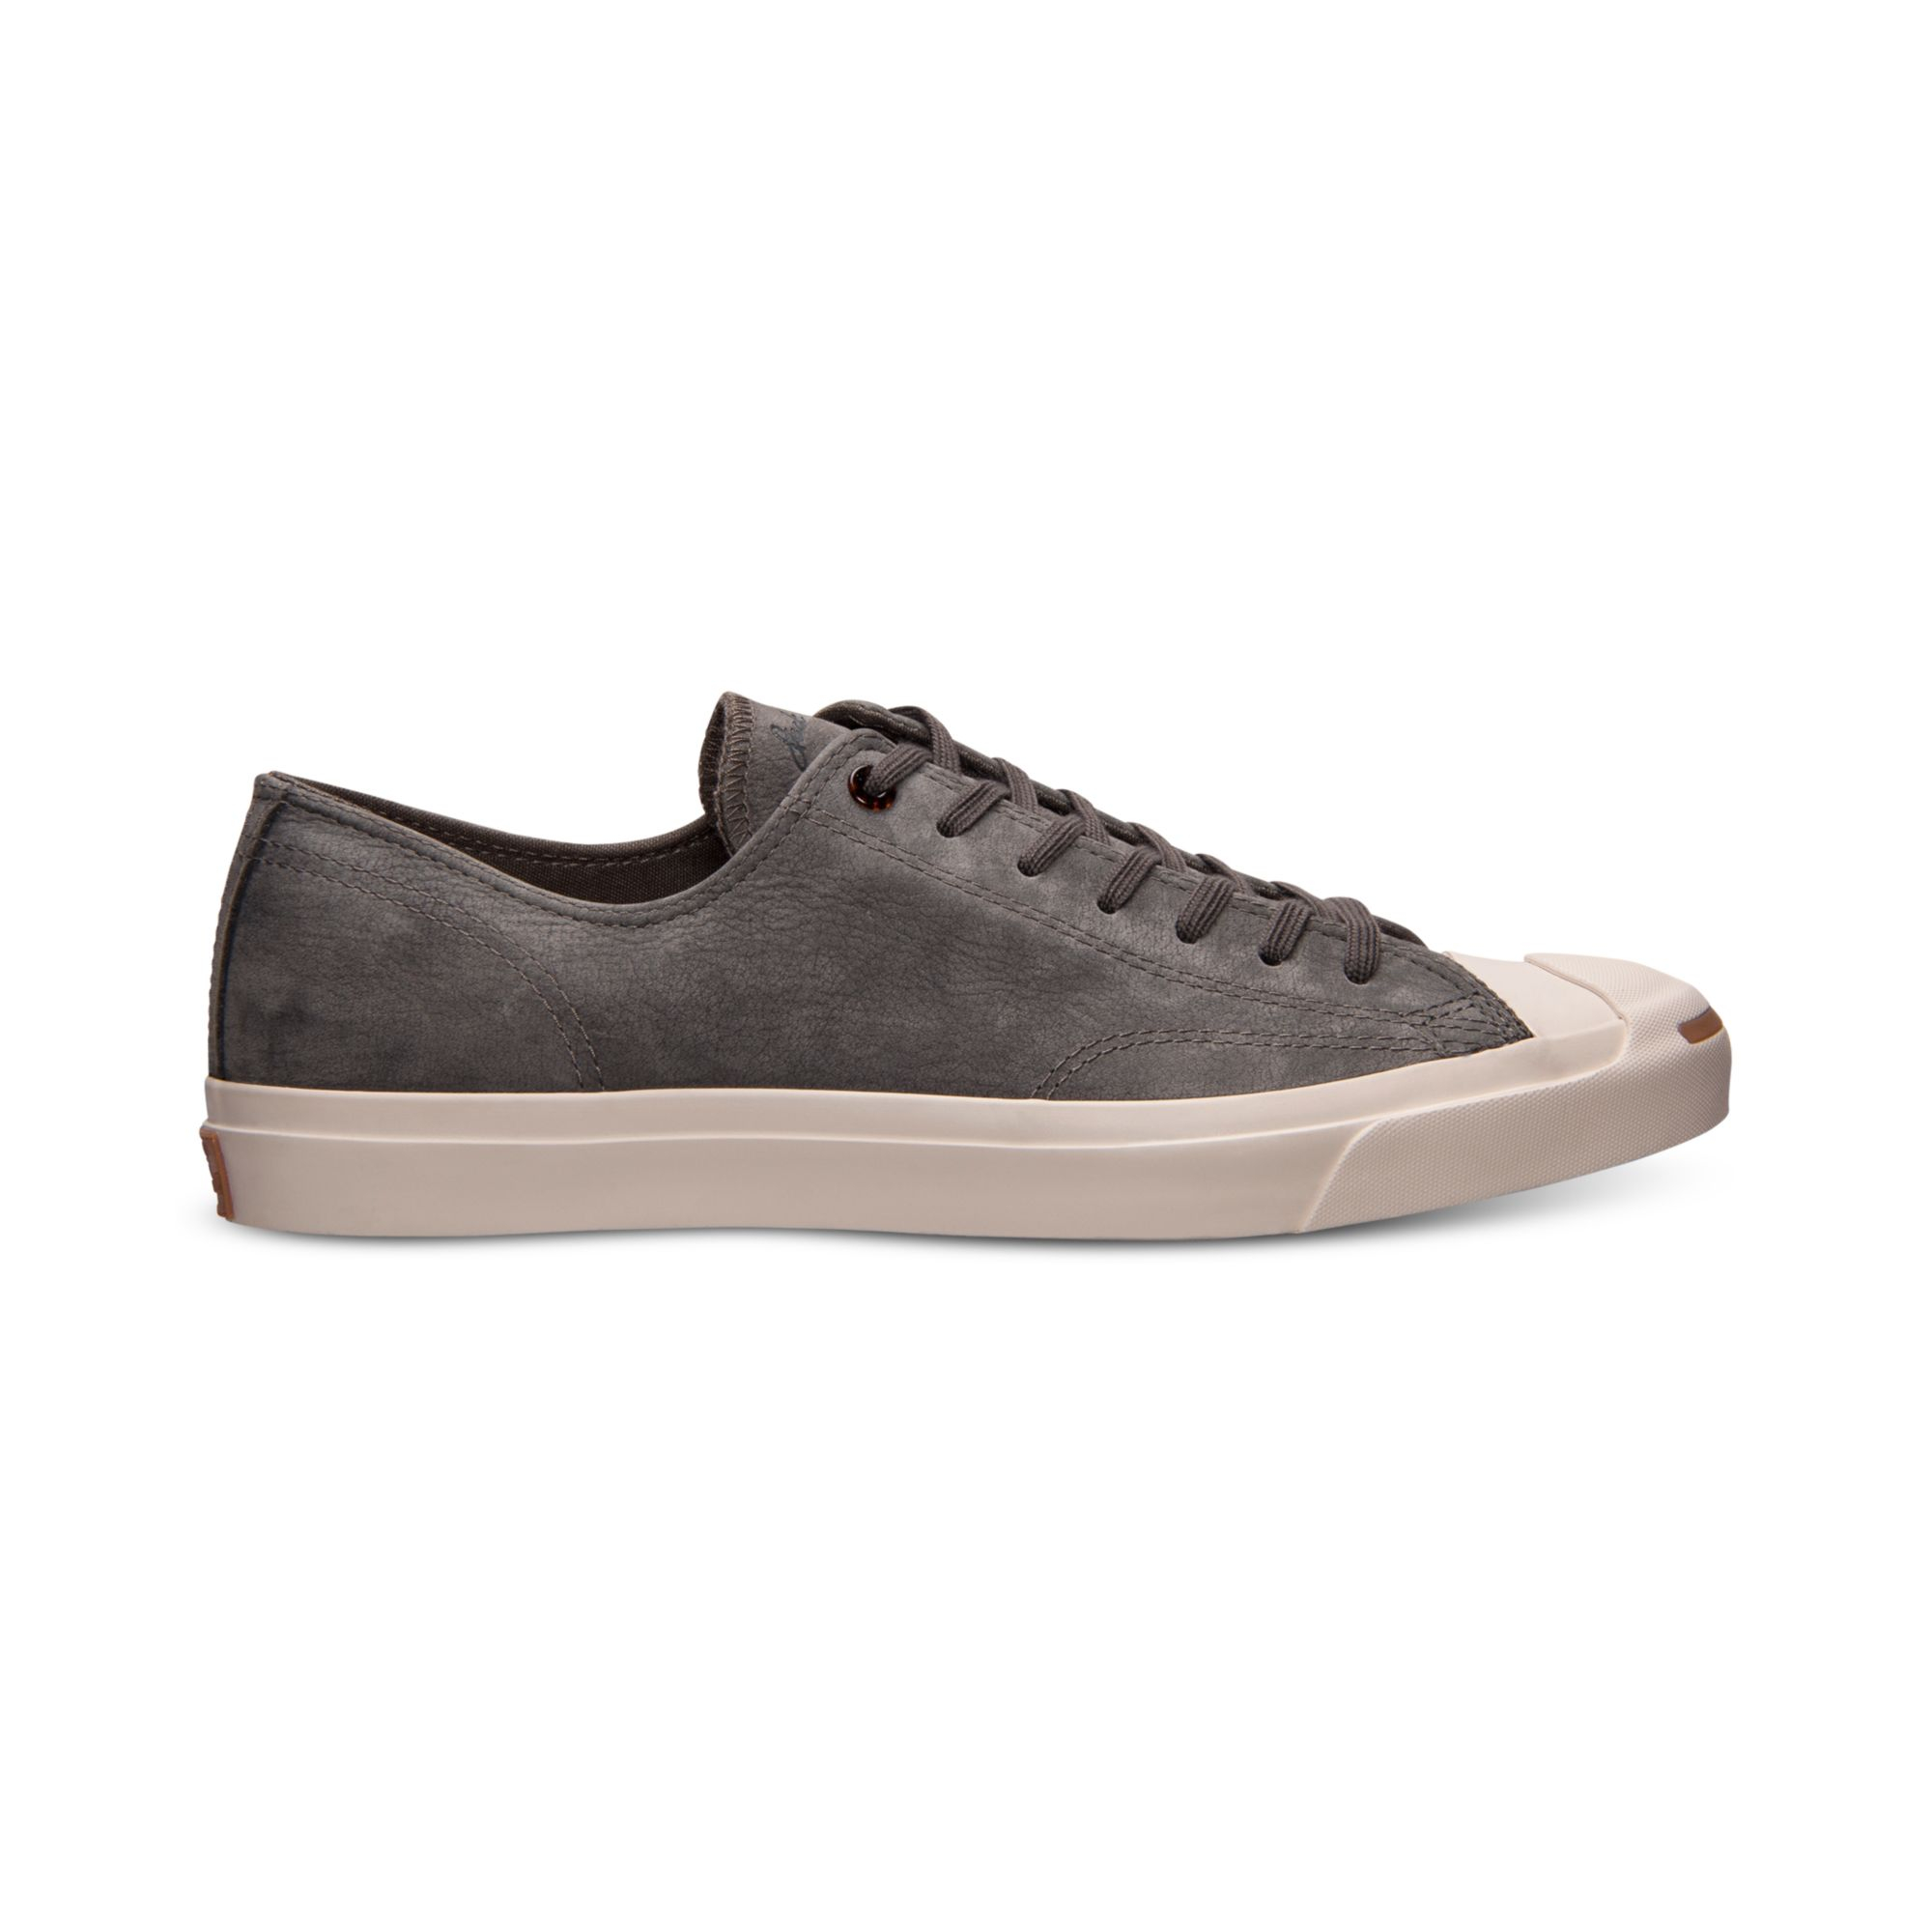 Jack Purcell Shoes Mens